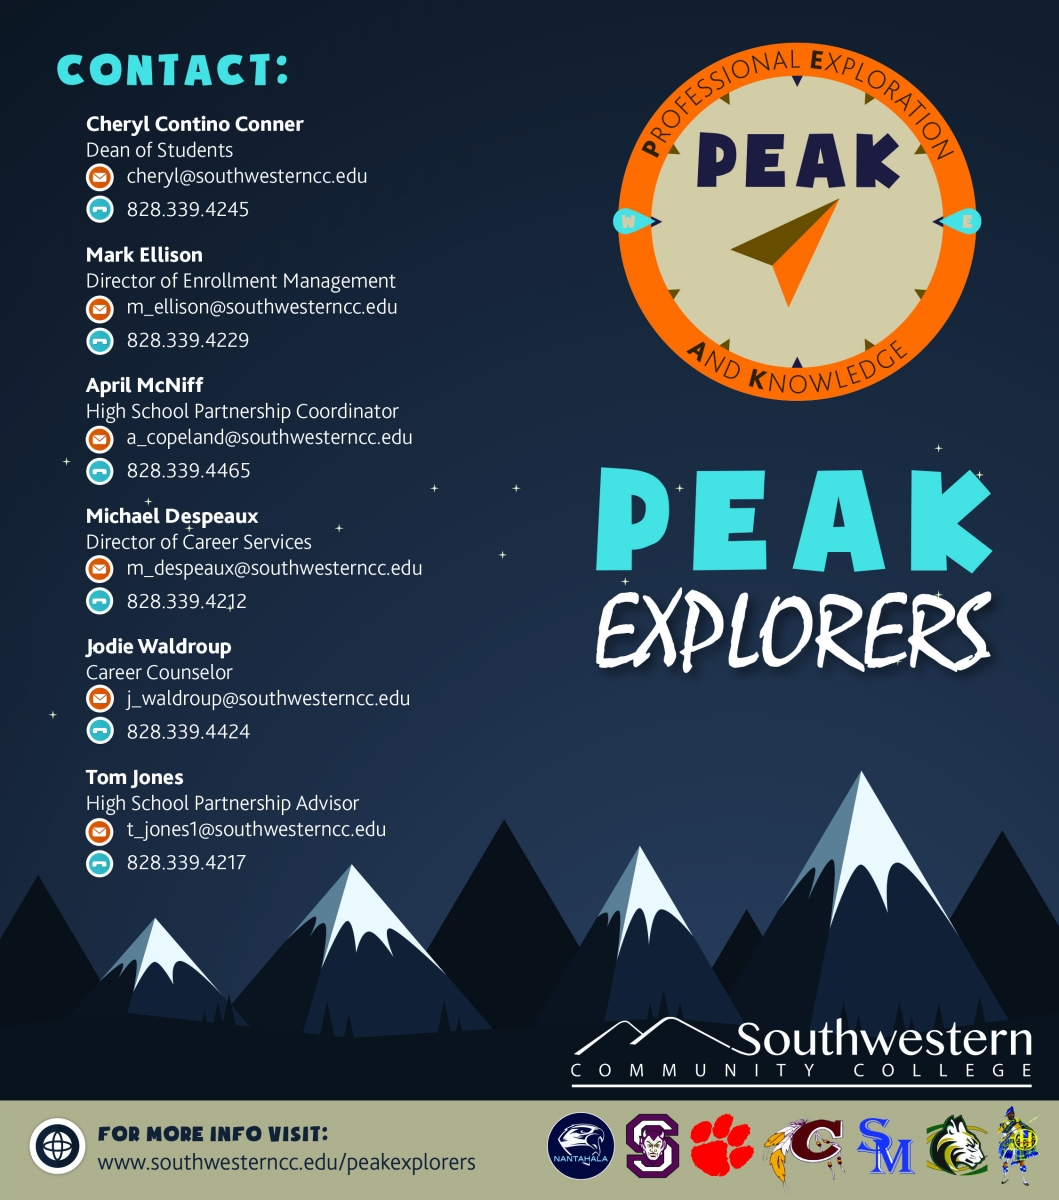 Peak Explorer Brochure